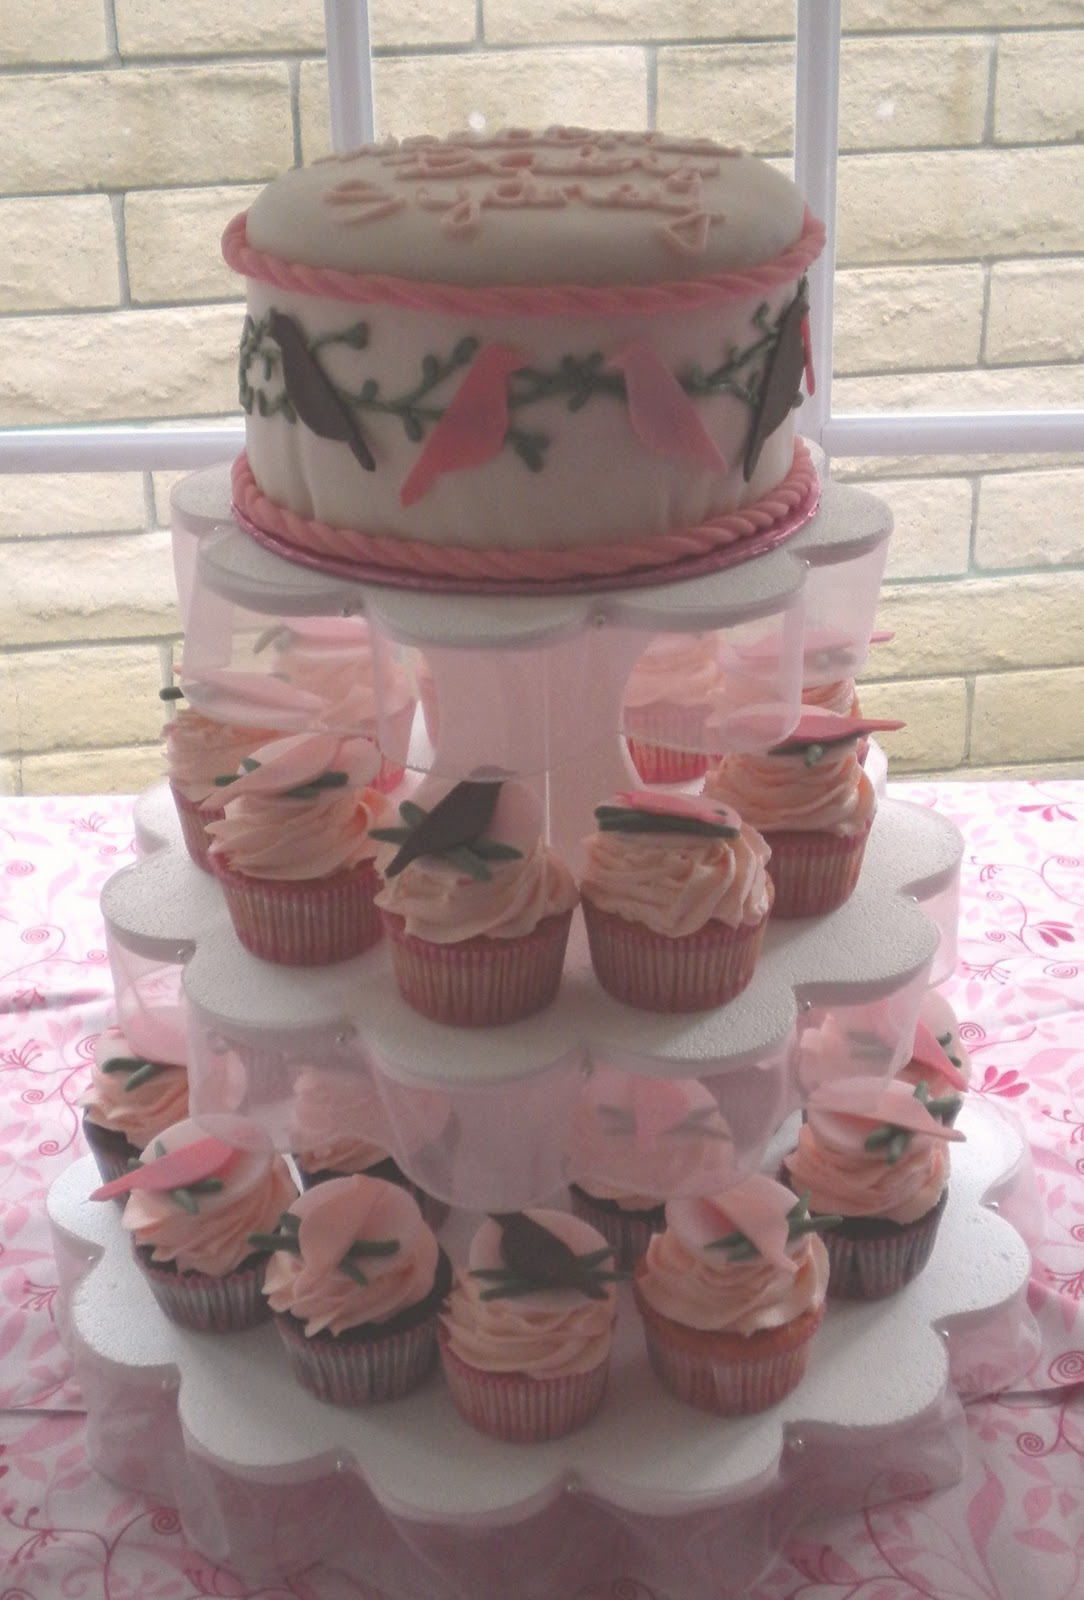 The Cupcakes Are Chocolate And White Cake (colored Pink). The Topper Is 5  Layers Of Chocolate, White And Red Velvet With Pink Vanilla Icing, ...